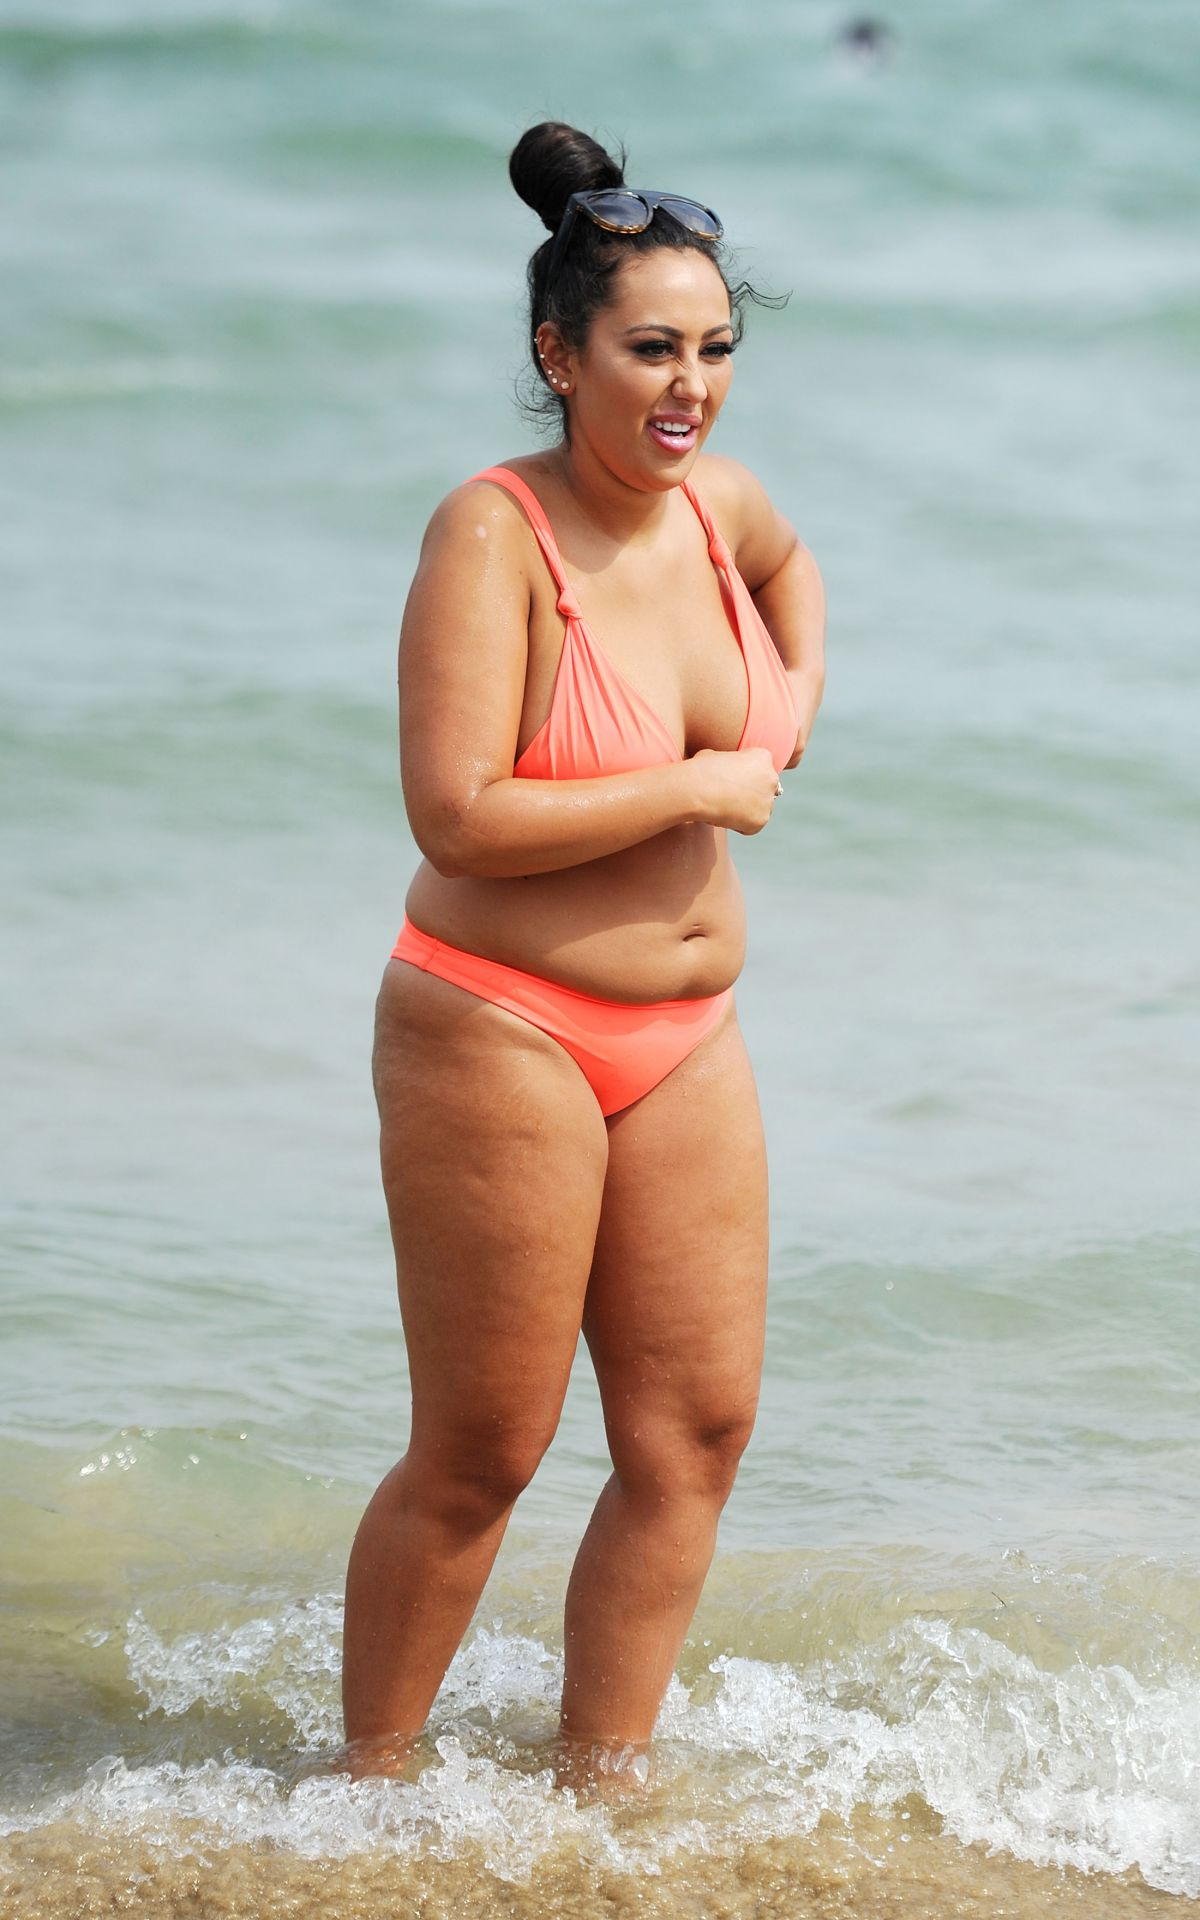 Sophie Kasaei in Pink Bikini on the beach in Lanzarote Pic 34 of 35